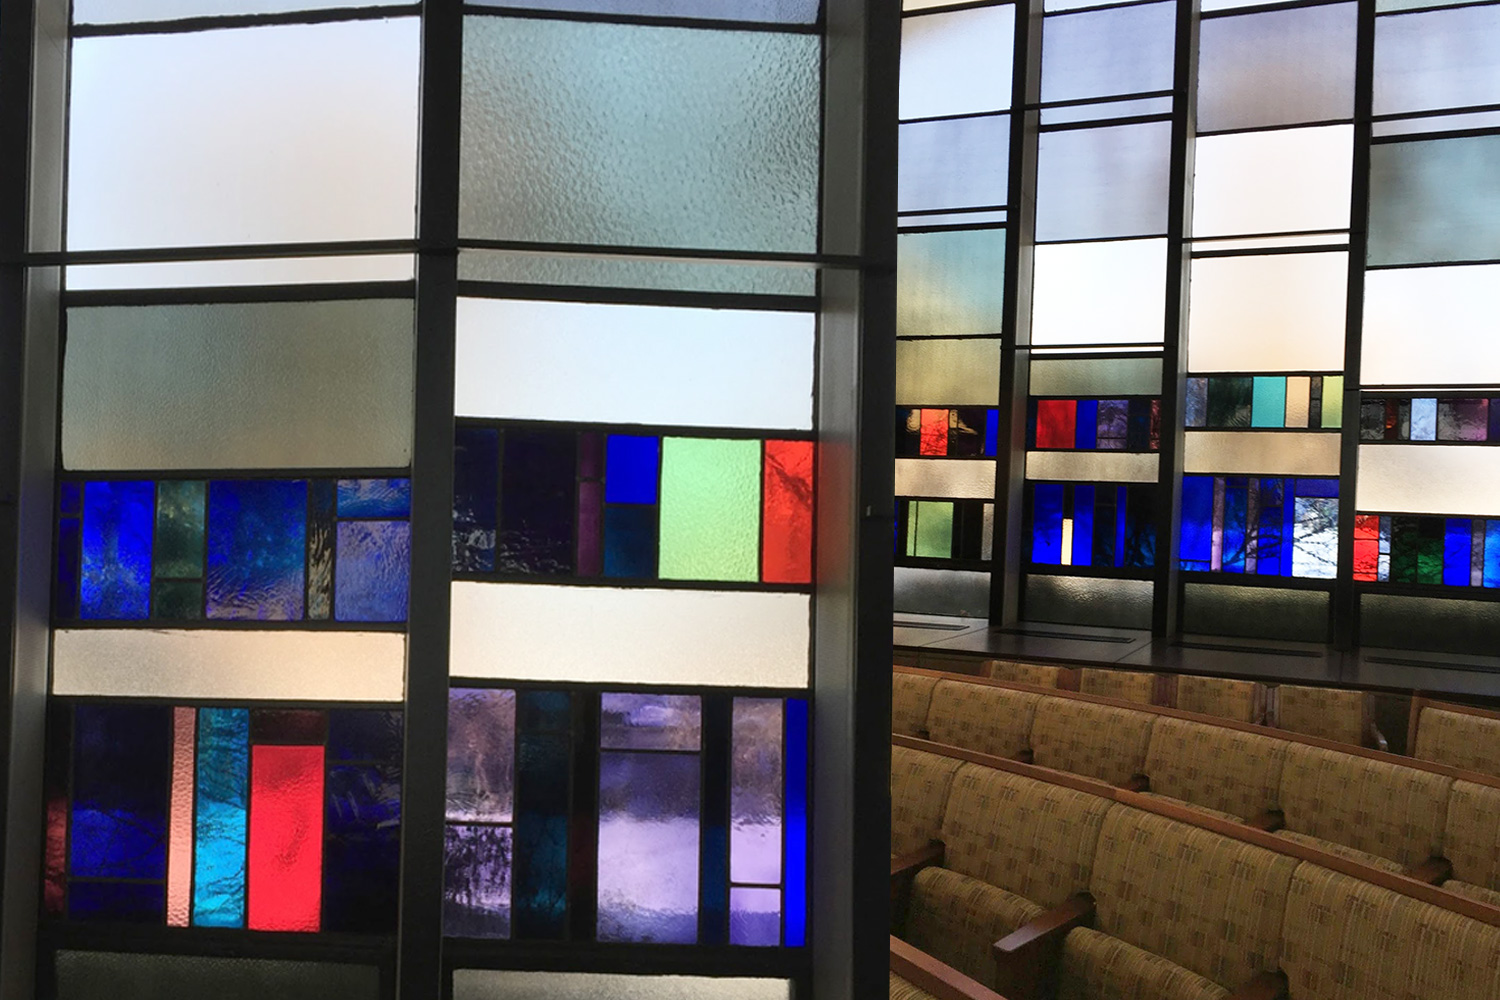 The windows in Beth El's sanctuary are composed of a mixture of translucent, clear, smooth, textured and colorful rectangles.